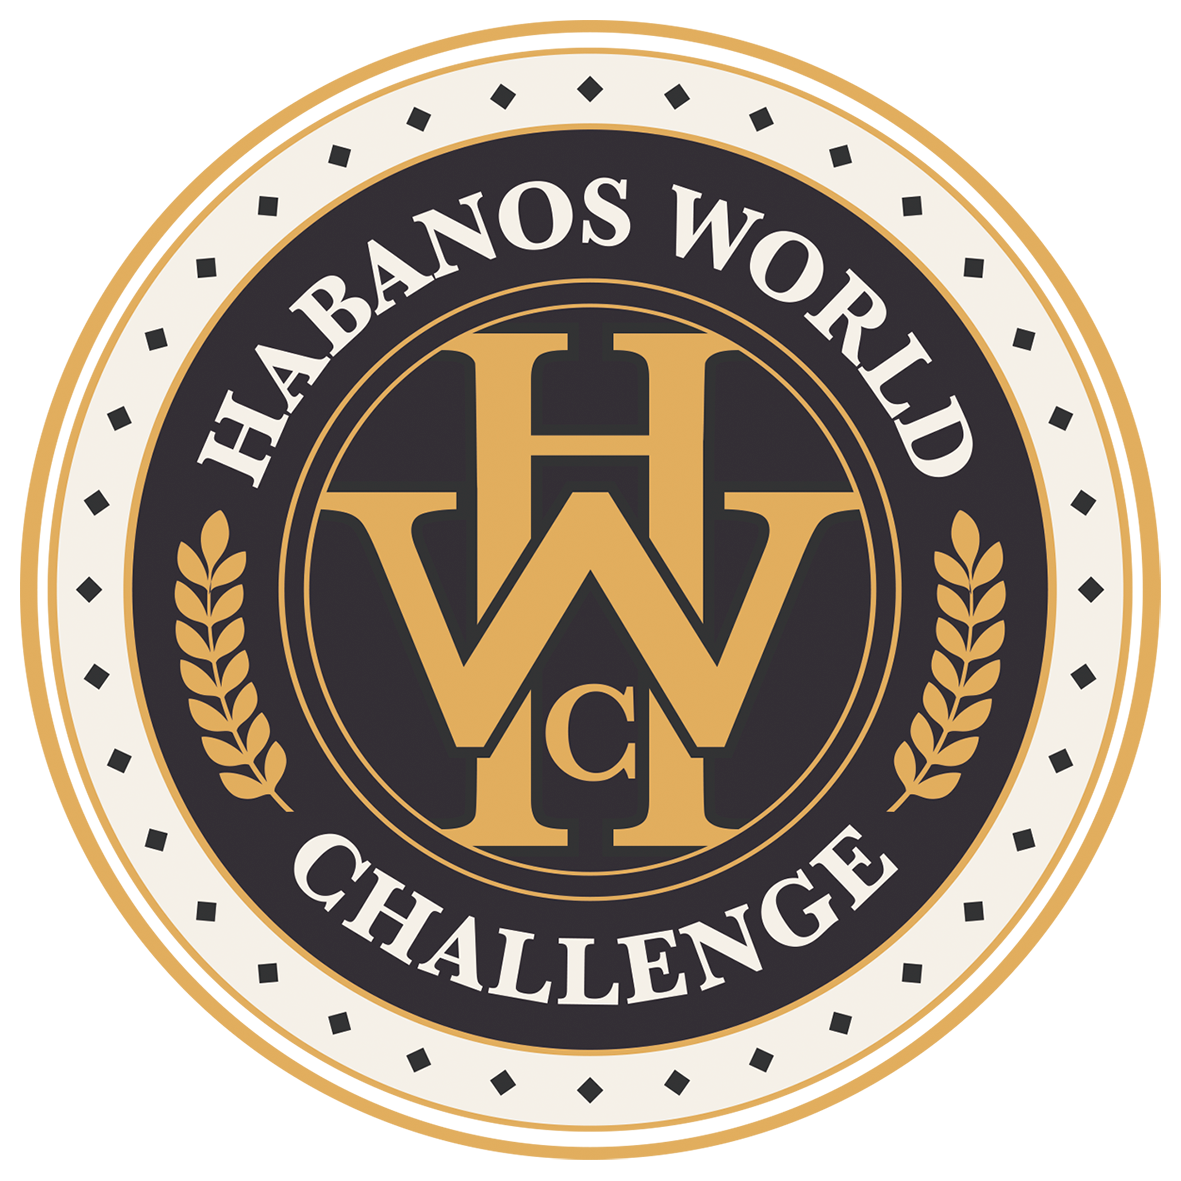 The Habanos World Challenge Contest